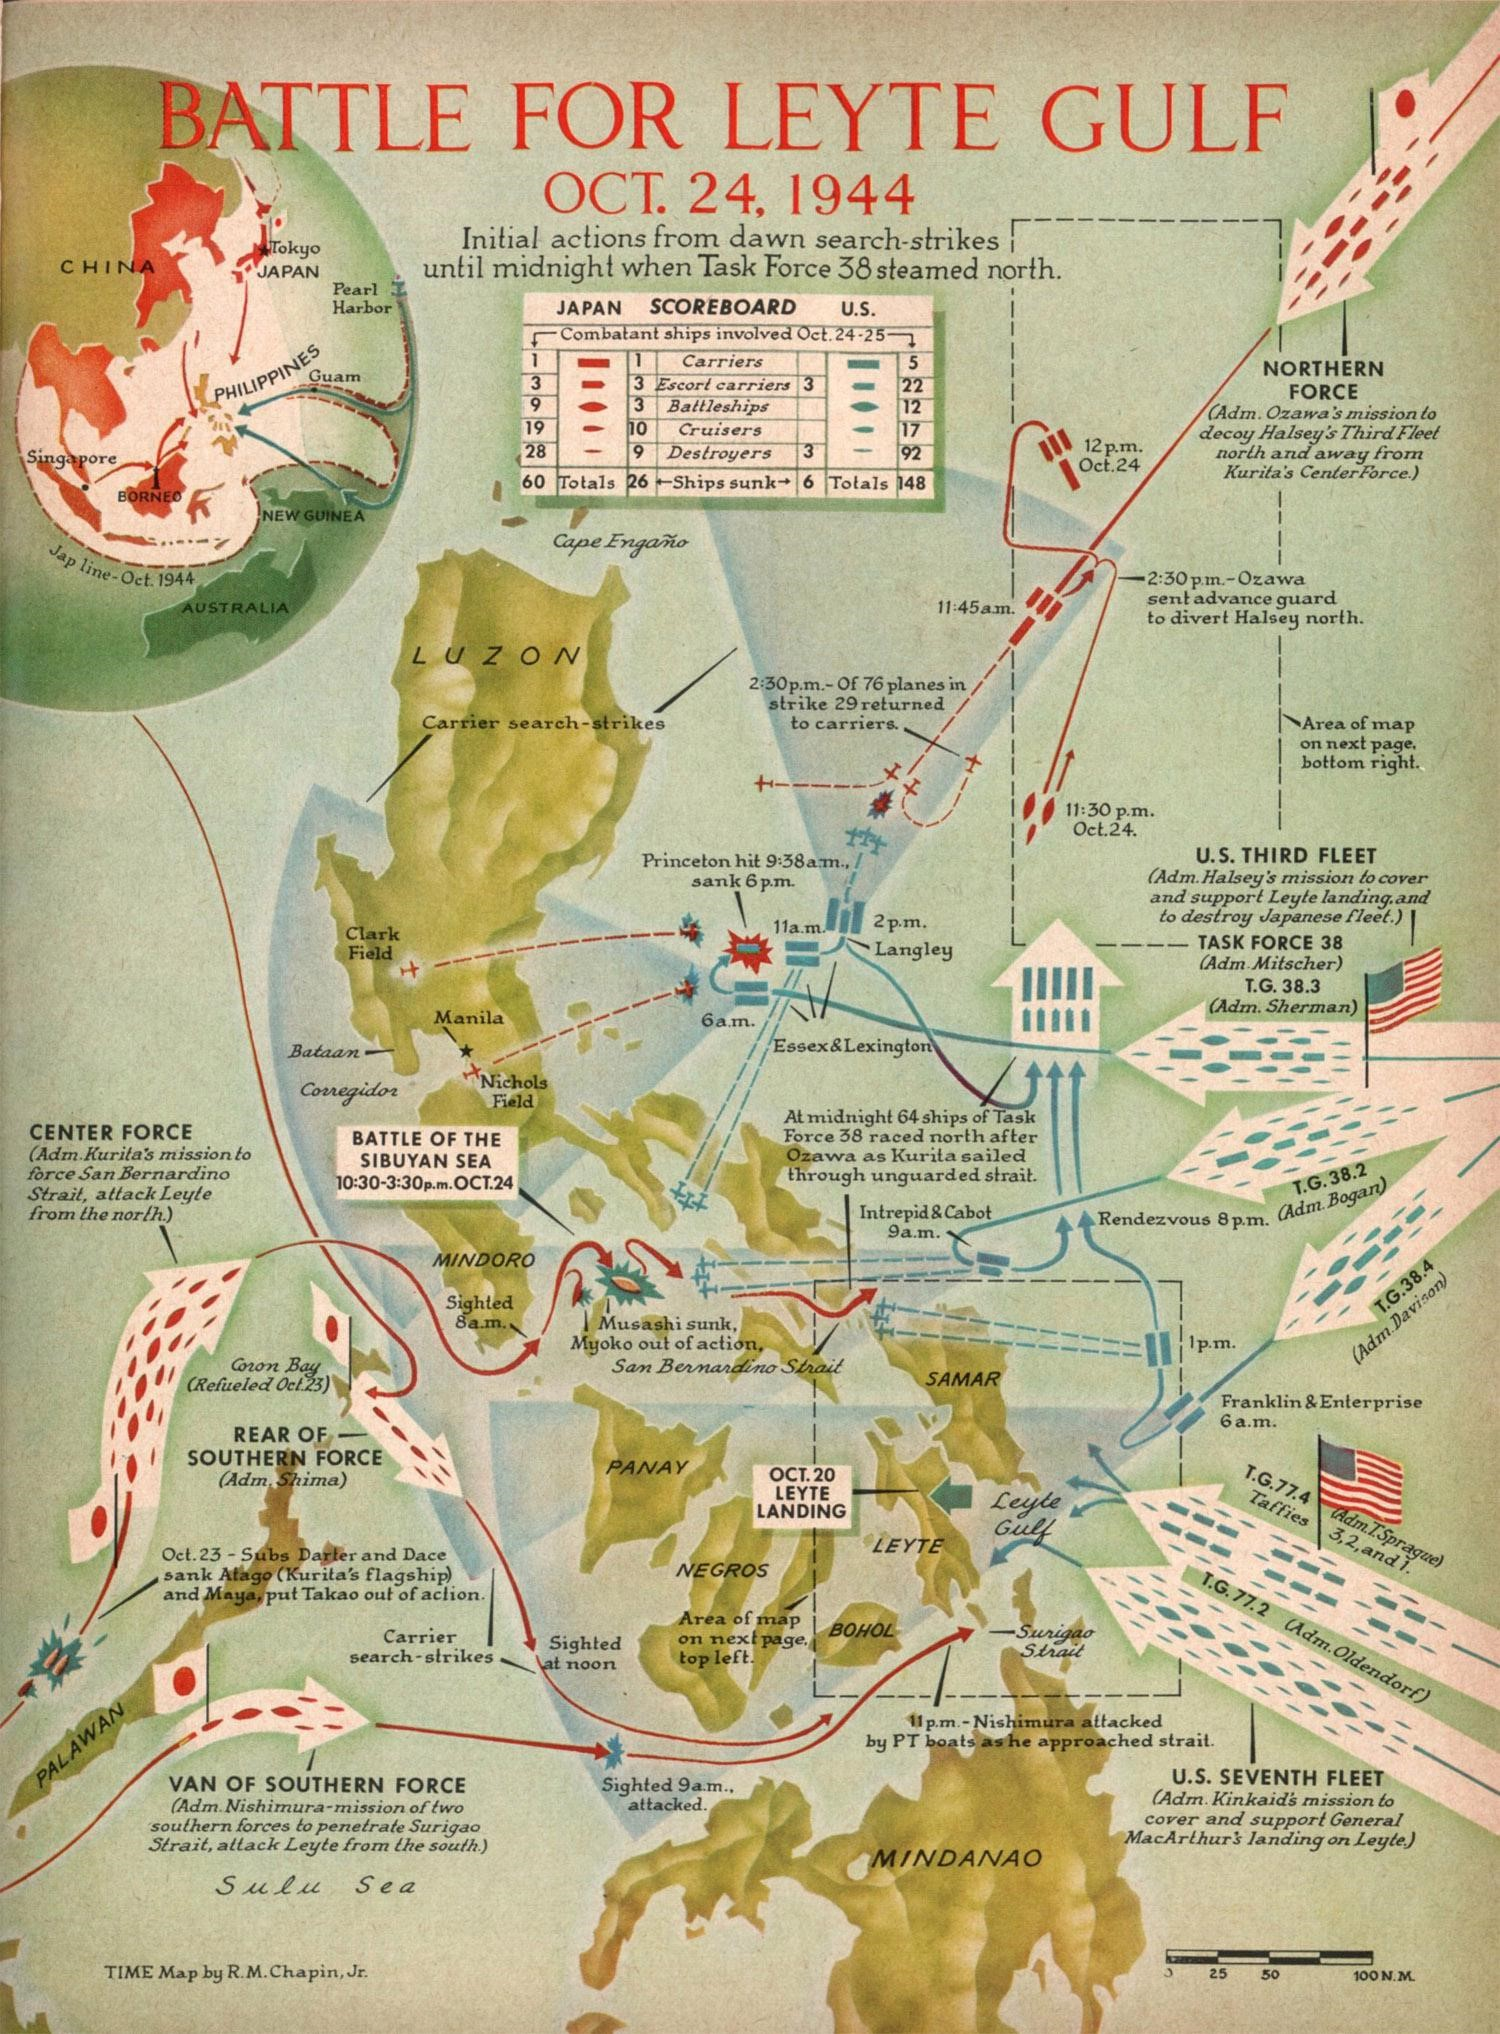 battle-for-leyte-gulf-oct-23-26-1944-vintage-map